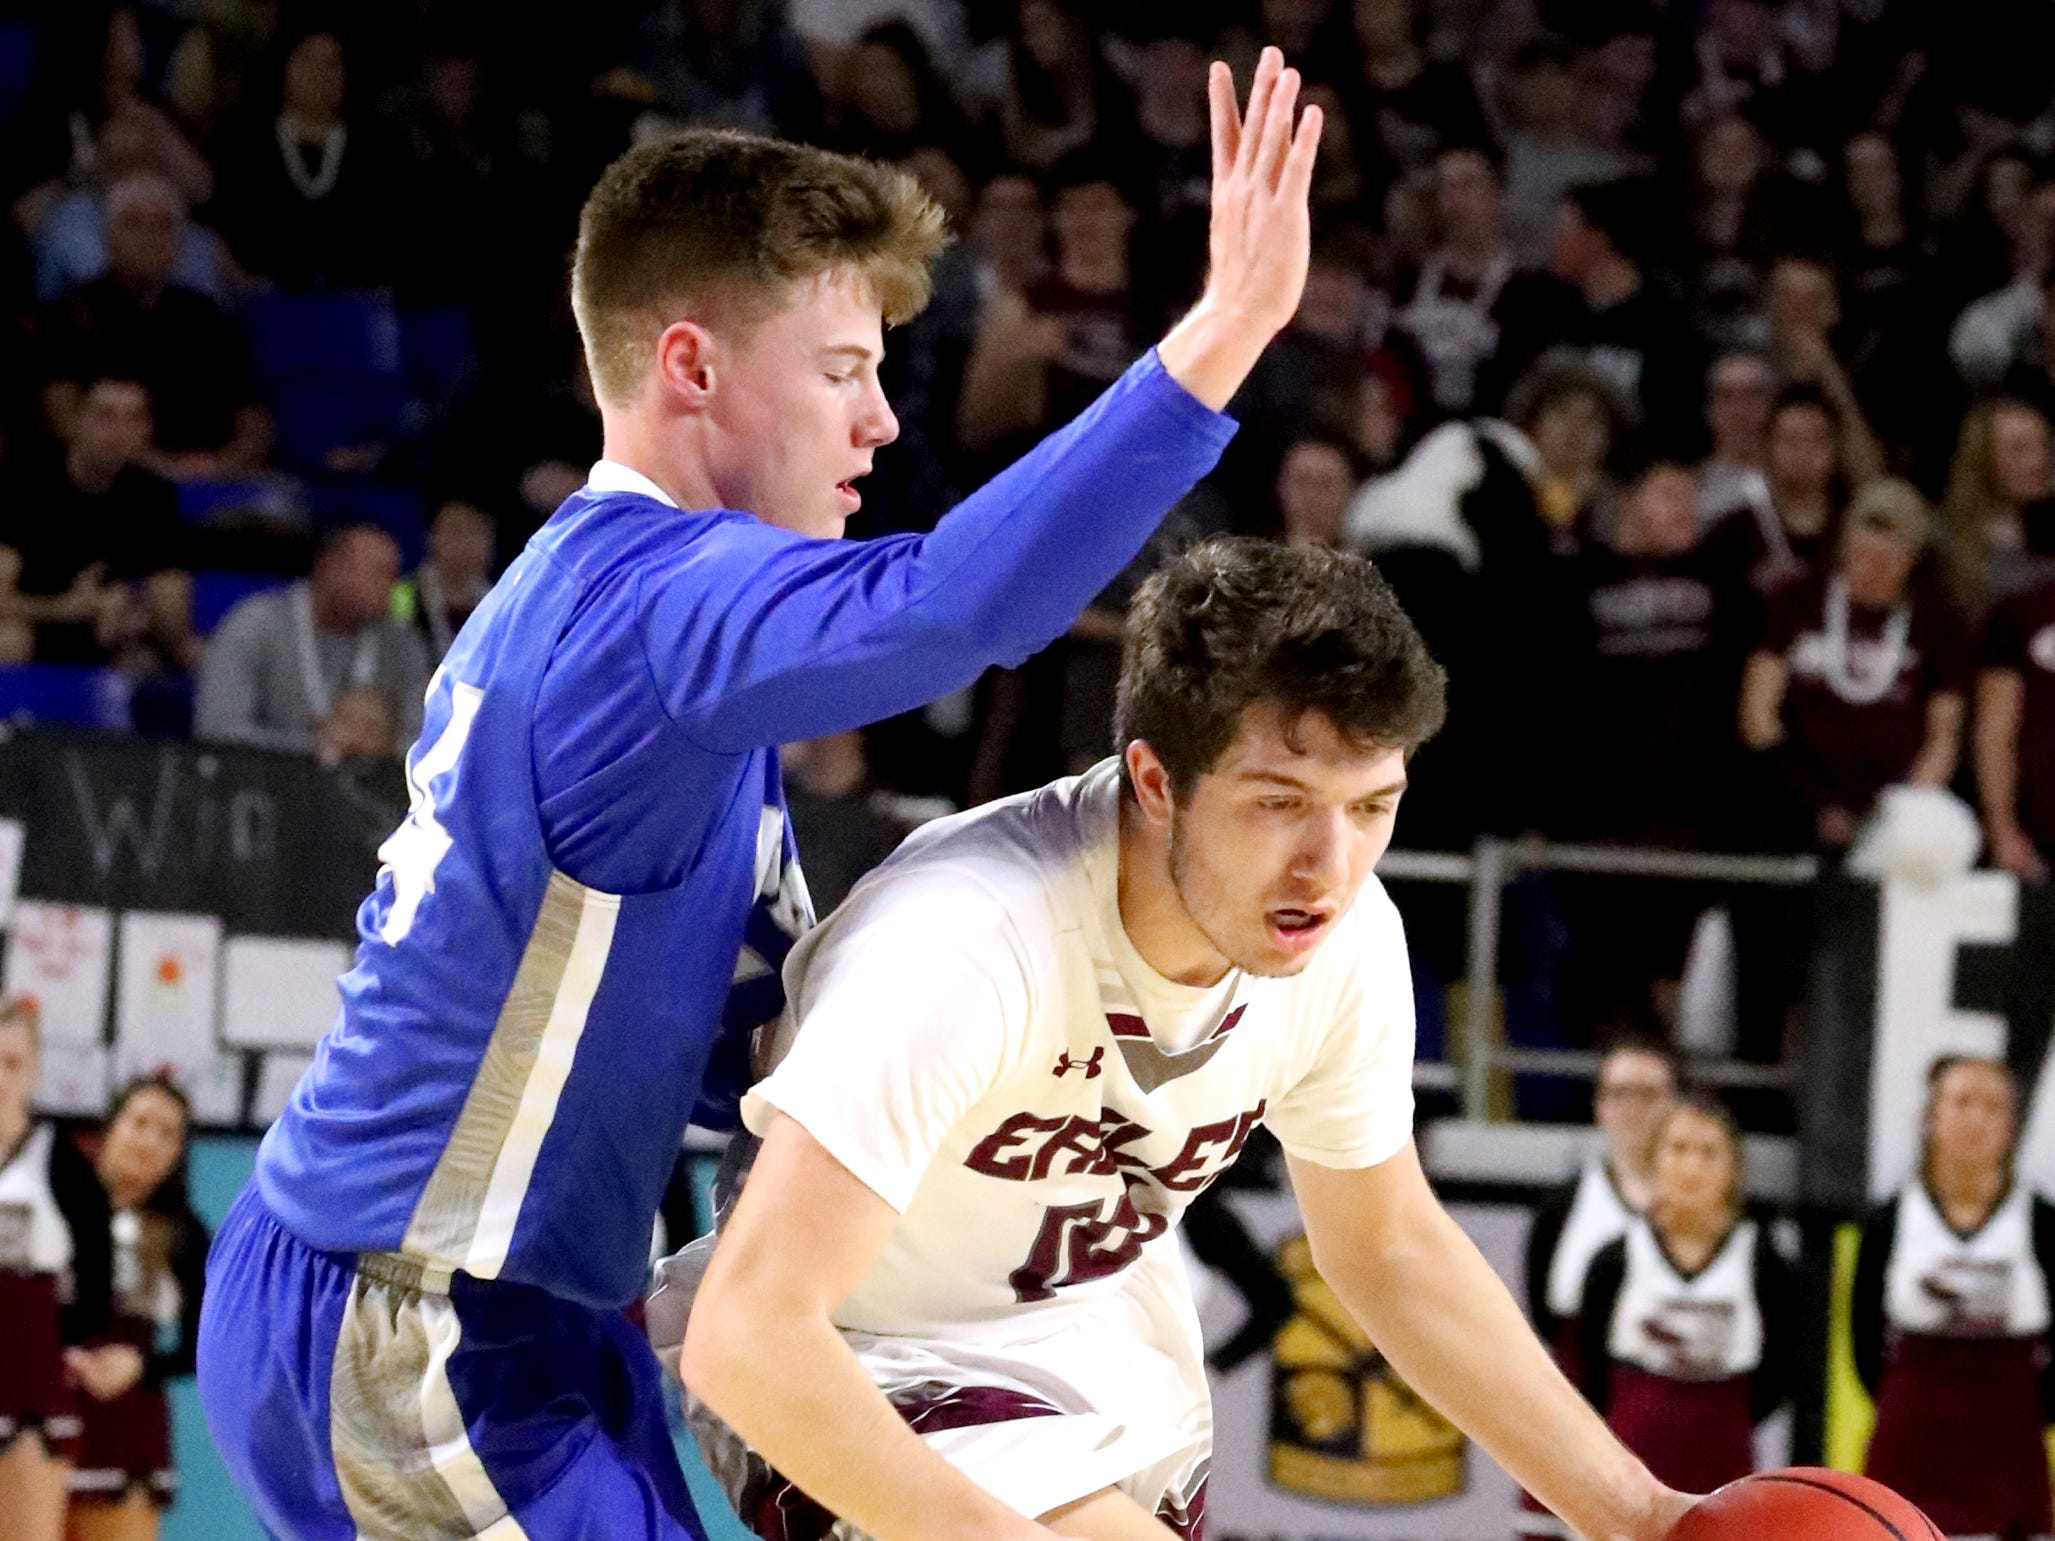 Eagleville's Bryson Kelley (10) moves around Cosby's Jeremy Wise (24) during the quarterfinal round of the TSSAA Class A Boys State Tournament, on Thursday, March 14, 2019, at Murphy Center in Murfreesboro, Tenn.